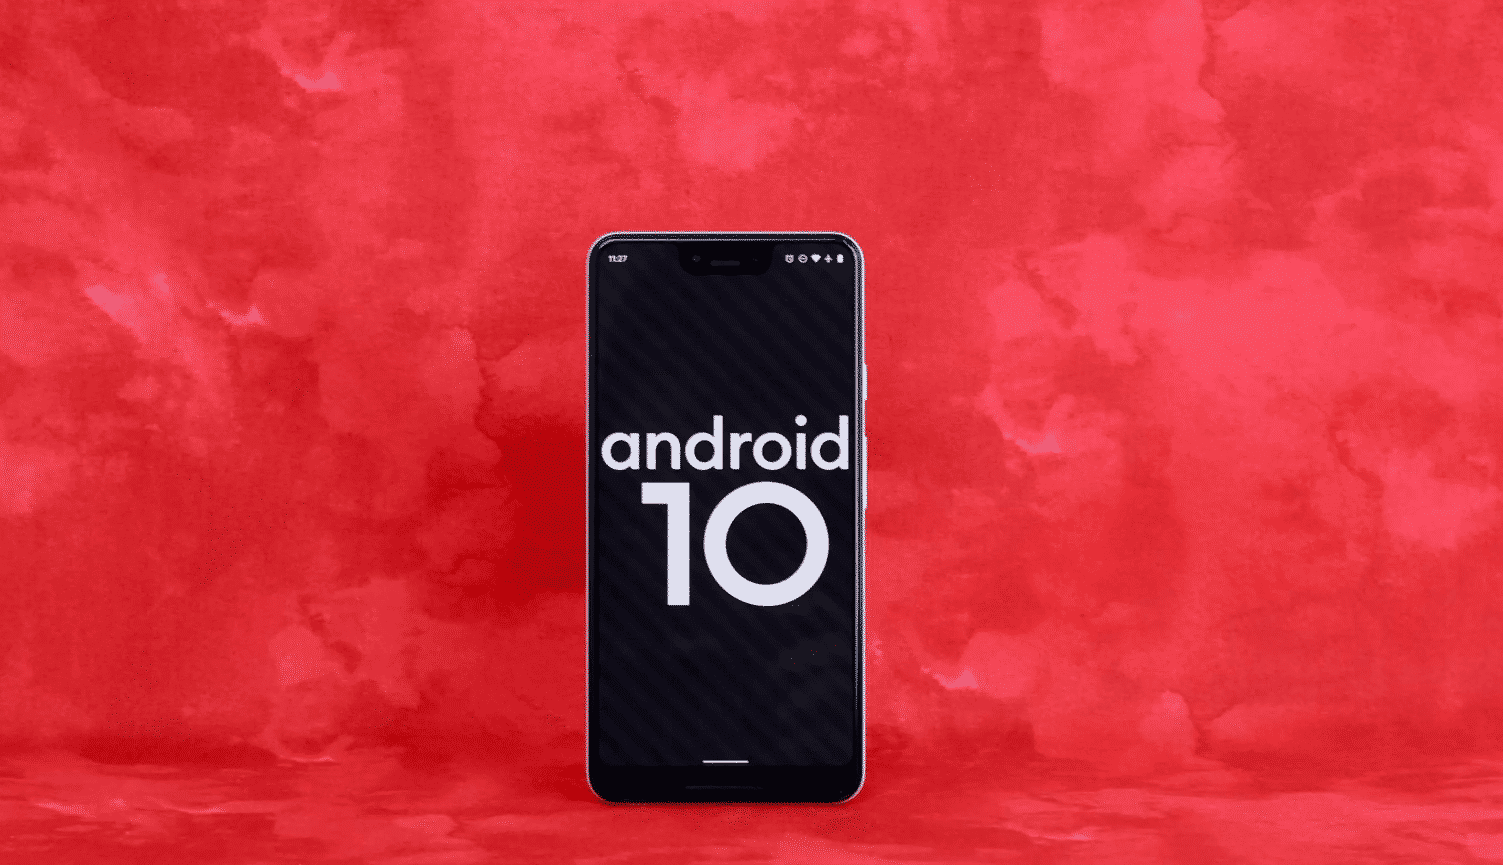 Android 10 is finally here: officially released to Pixel phones